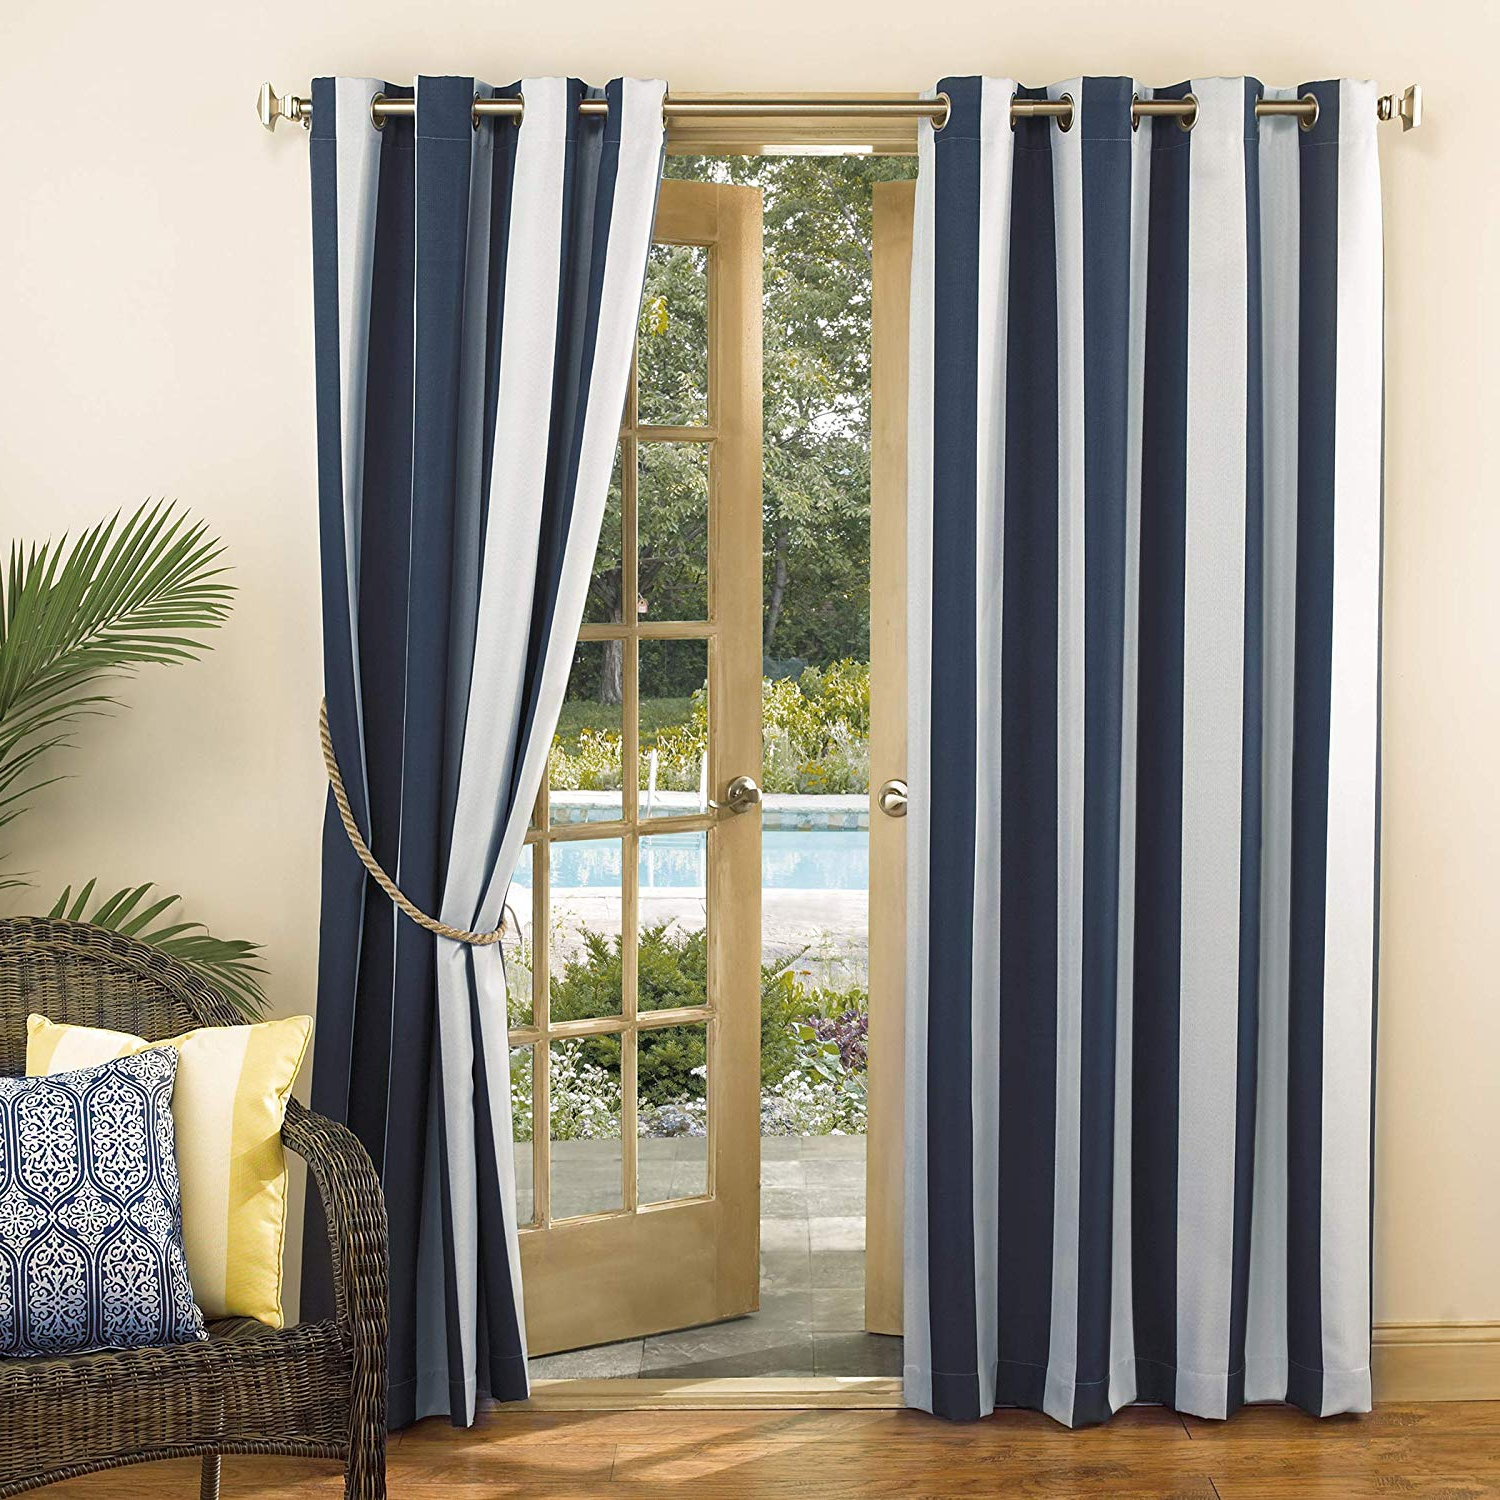 "Most Recently Released Valencia Cabana Stripe Indoor/outdoor Curtain Panels Within Sun Zero Valencia Uv Protectant Indoor Outdoor Curtain Panel, 54"" X 84"", Navy Blue (View 8 of 20)"